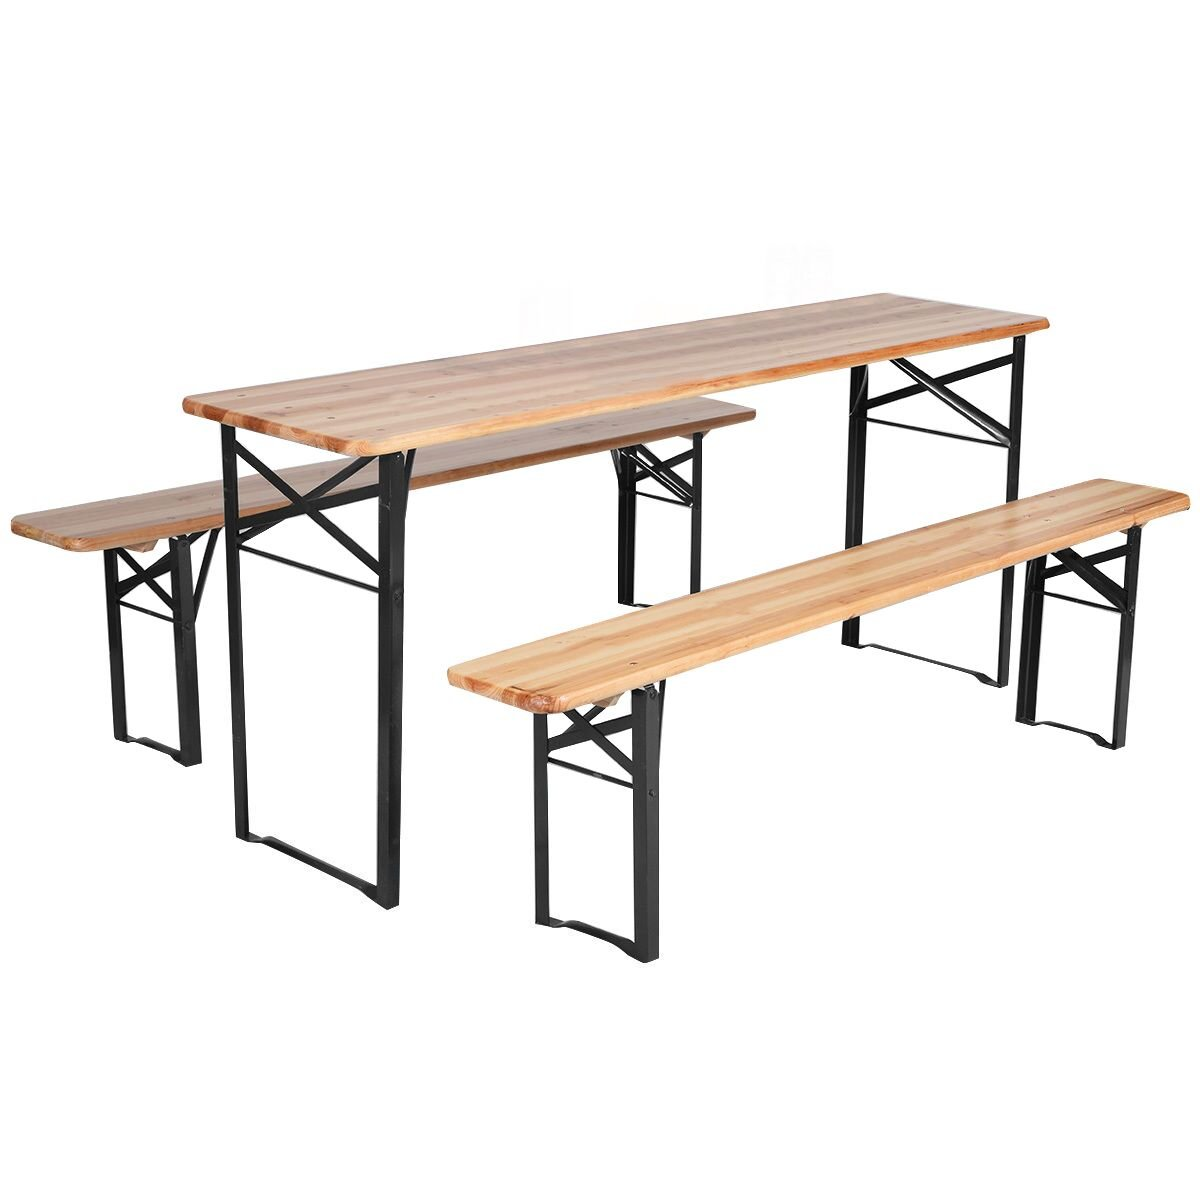 Lovely Amazon.com: Giantex 3 PCS Beer Table Bench Set Folding Wooden Top Picnic  Table Patio Garden: Kitchen U0026 Dining